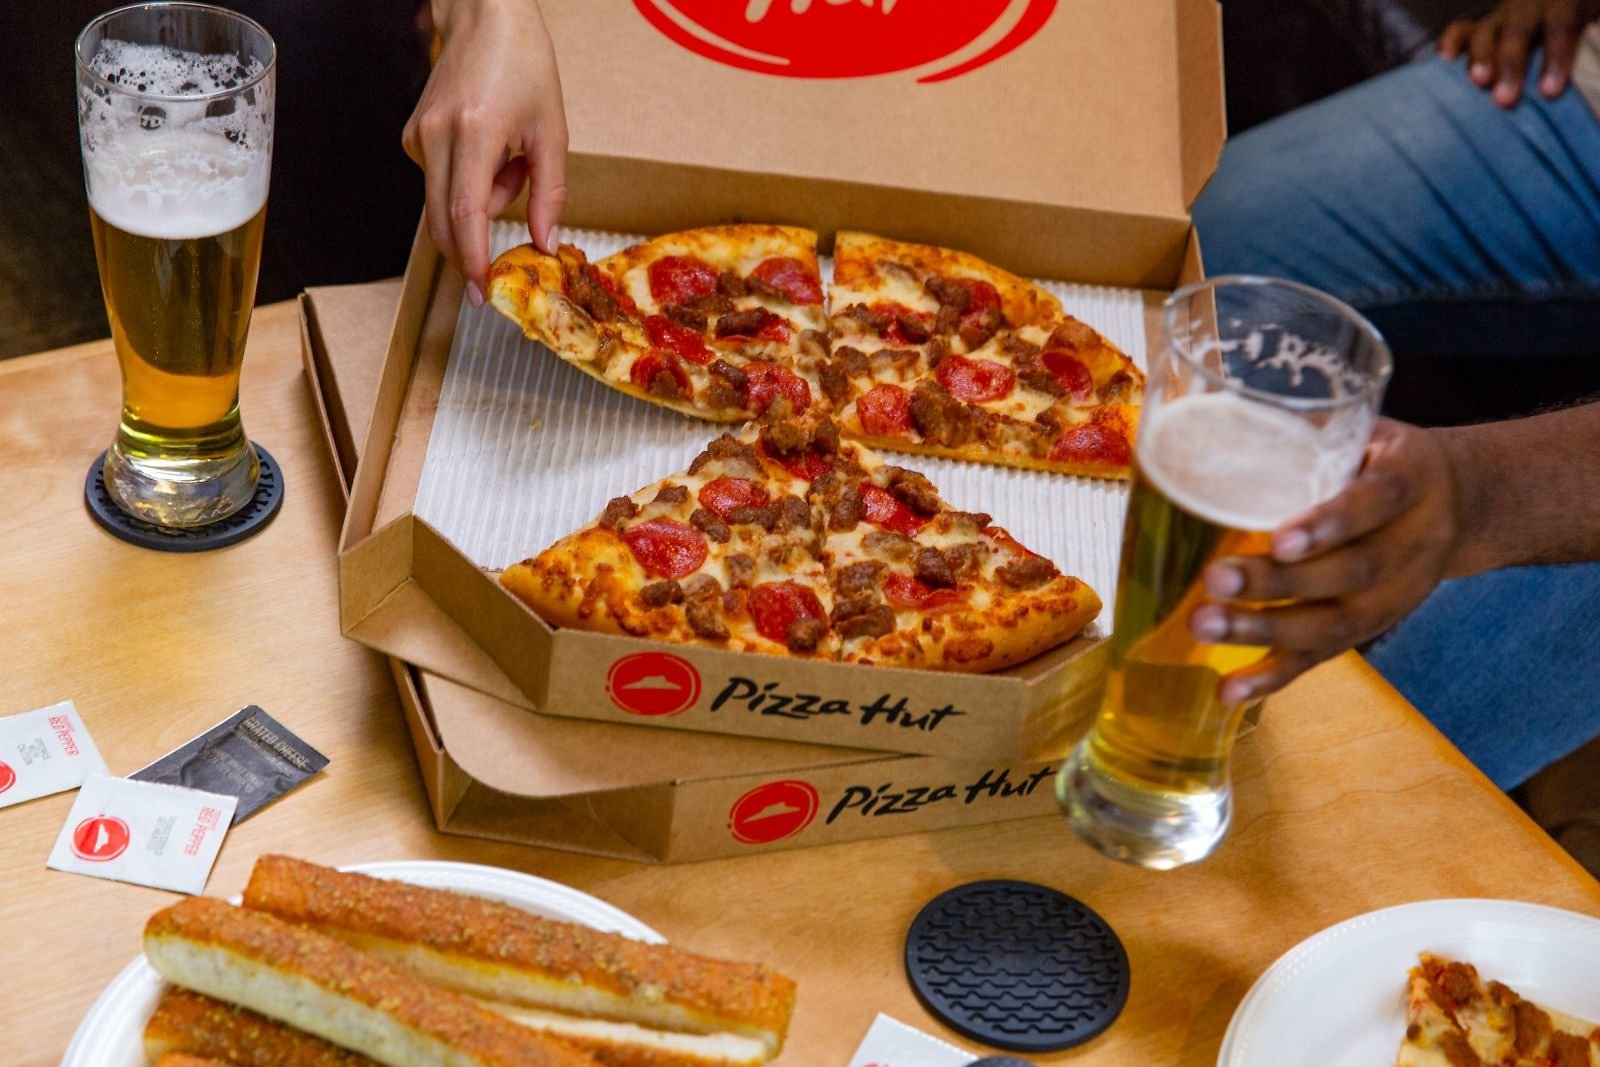 Pizza Hut Expands Beer Delivery Ahead of Super Bowl